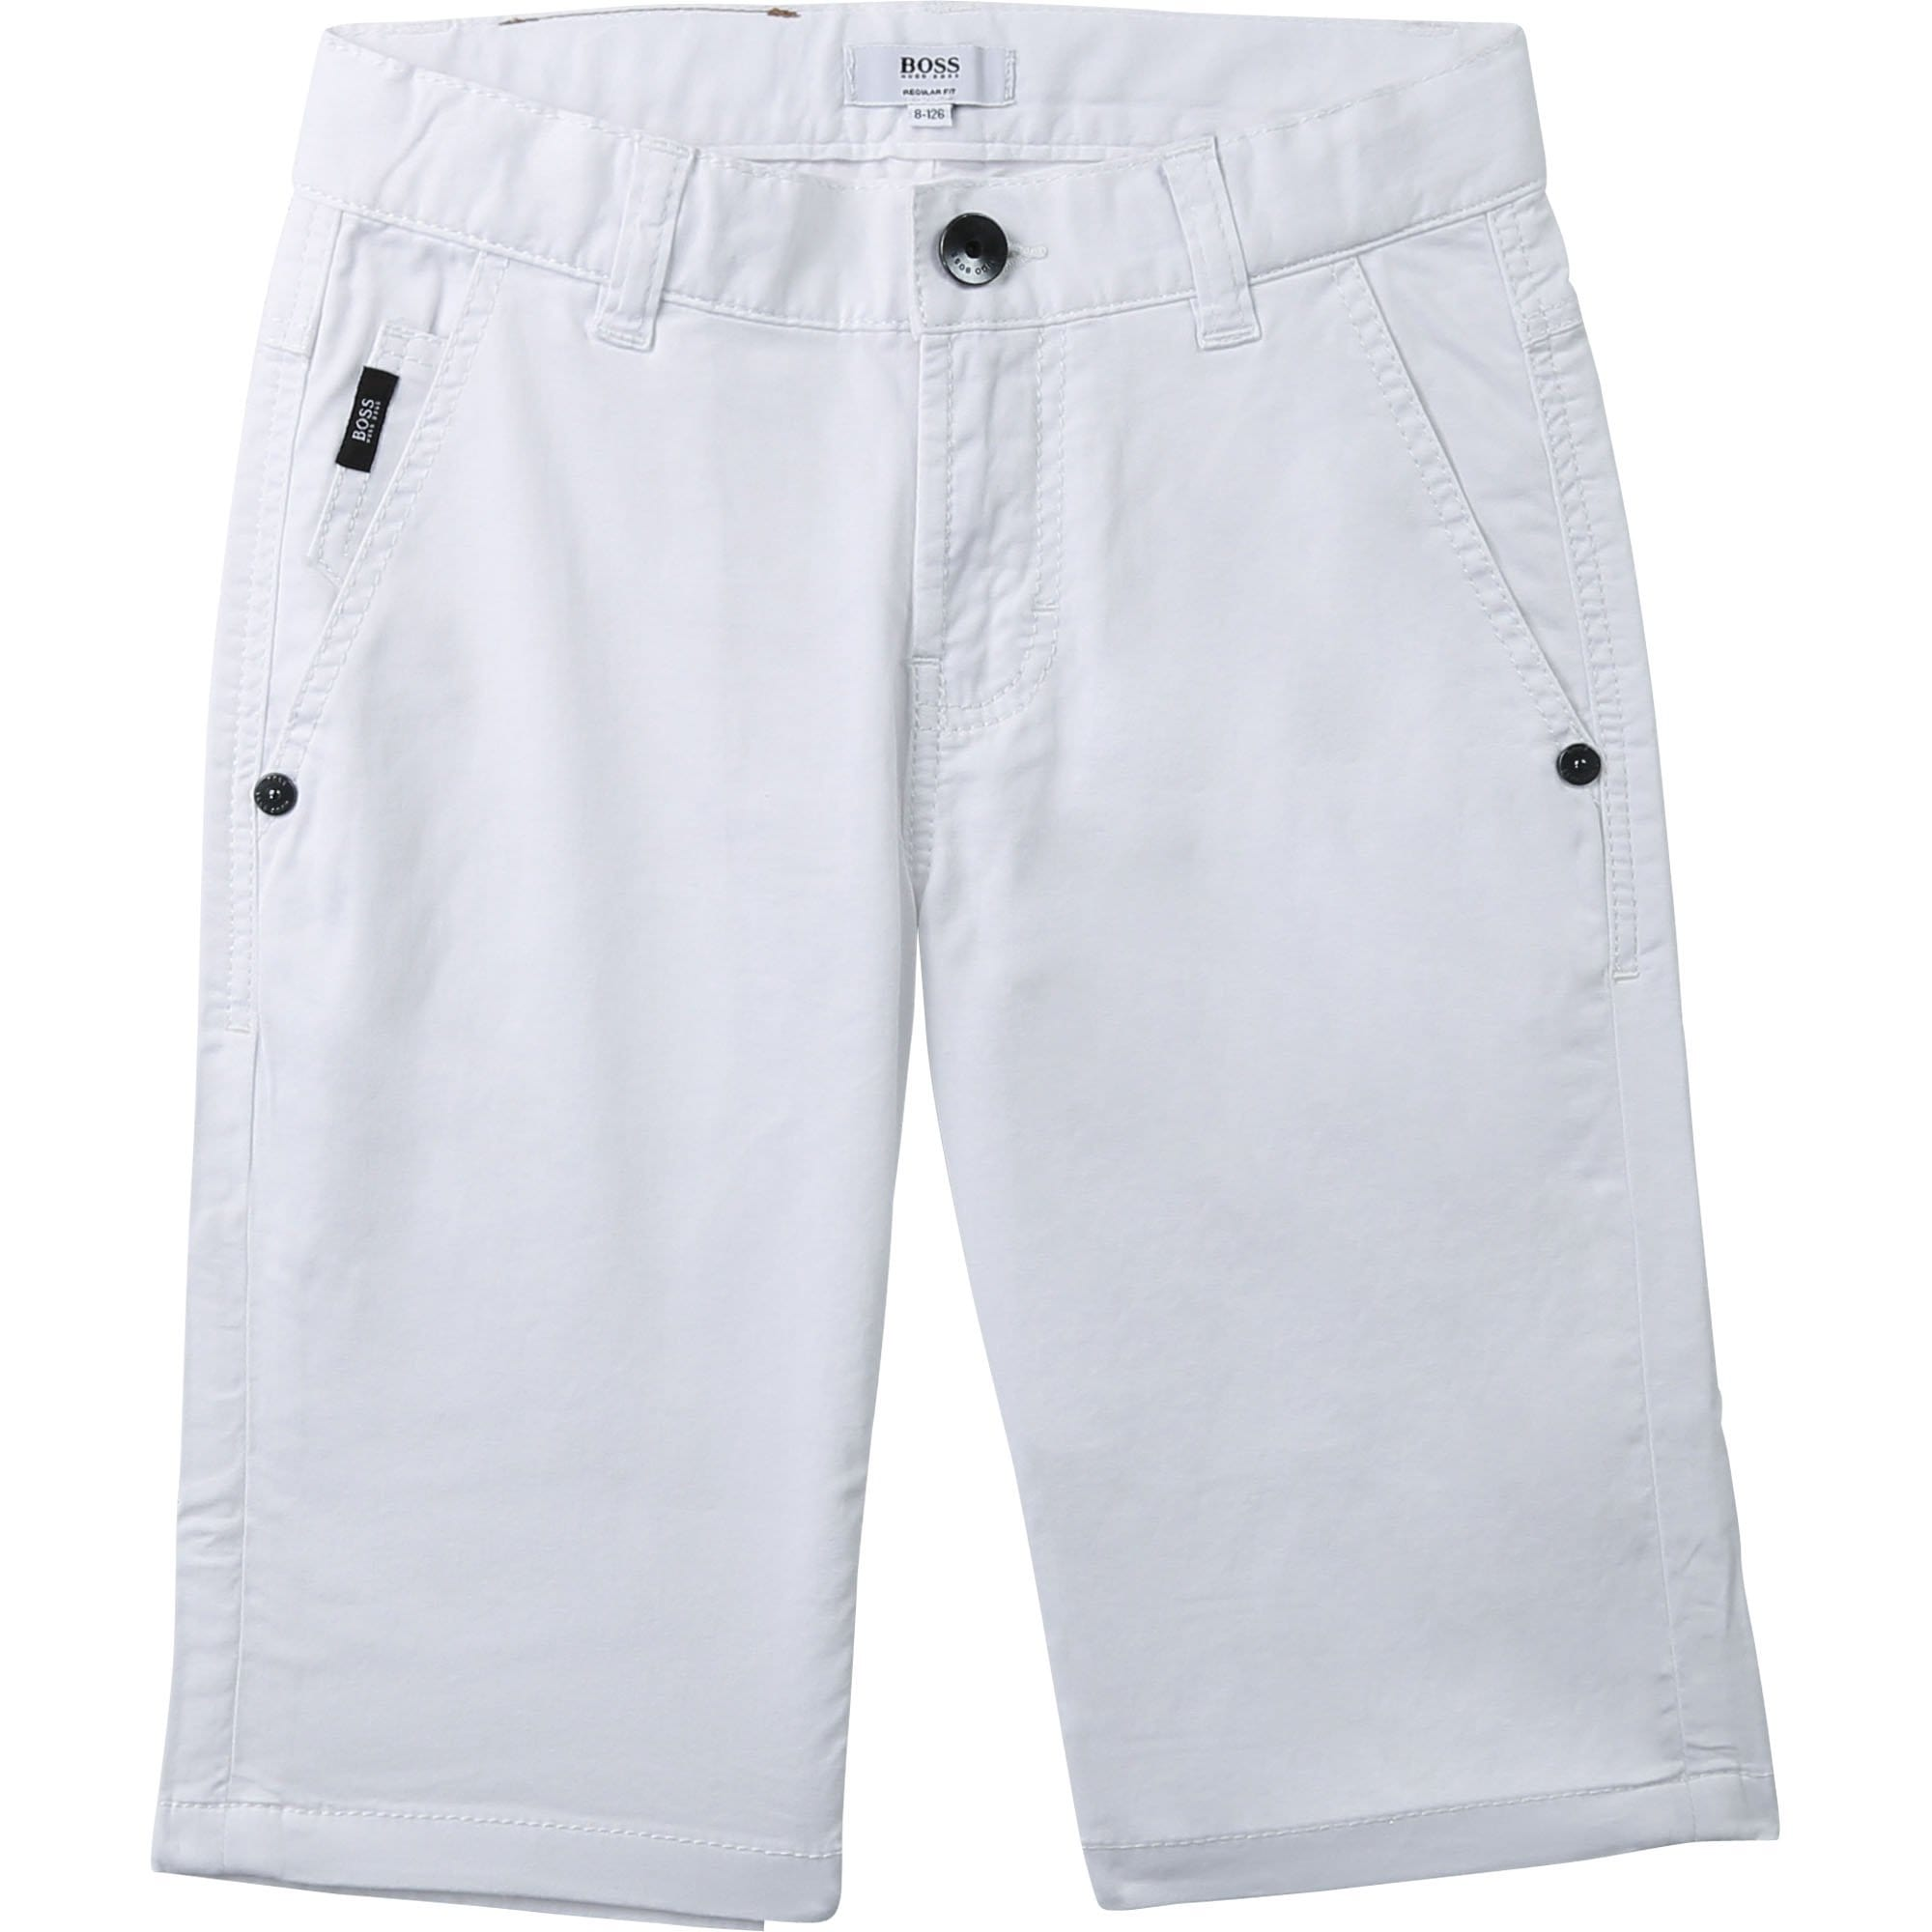 Hugo Boss Chino Shorts - White J24629/10B